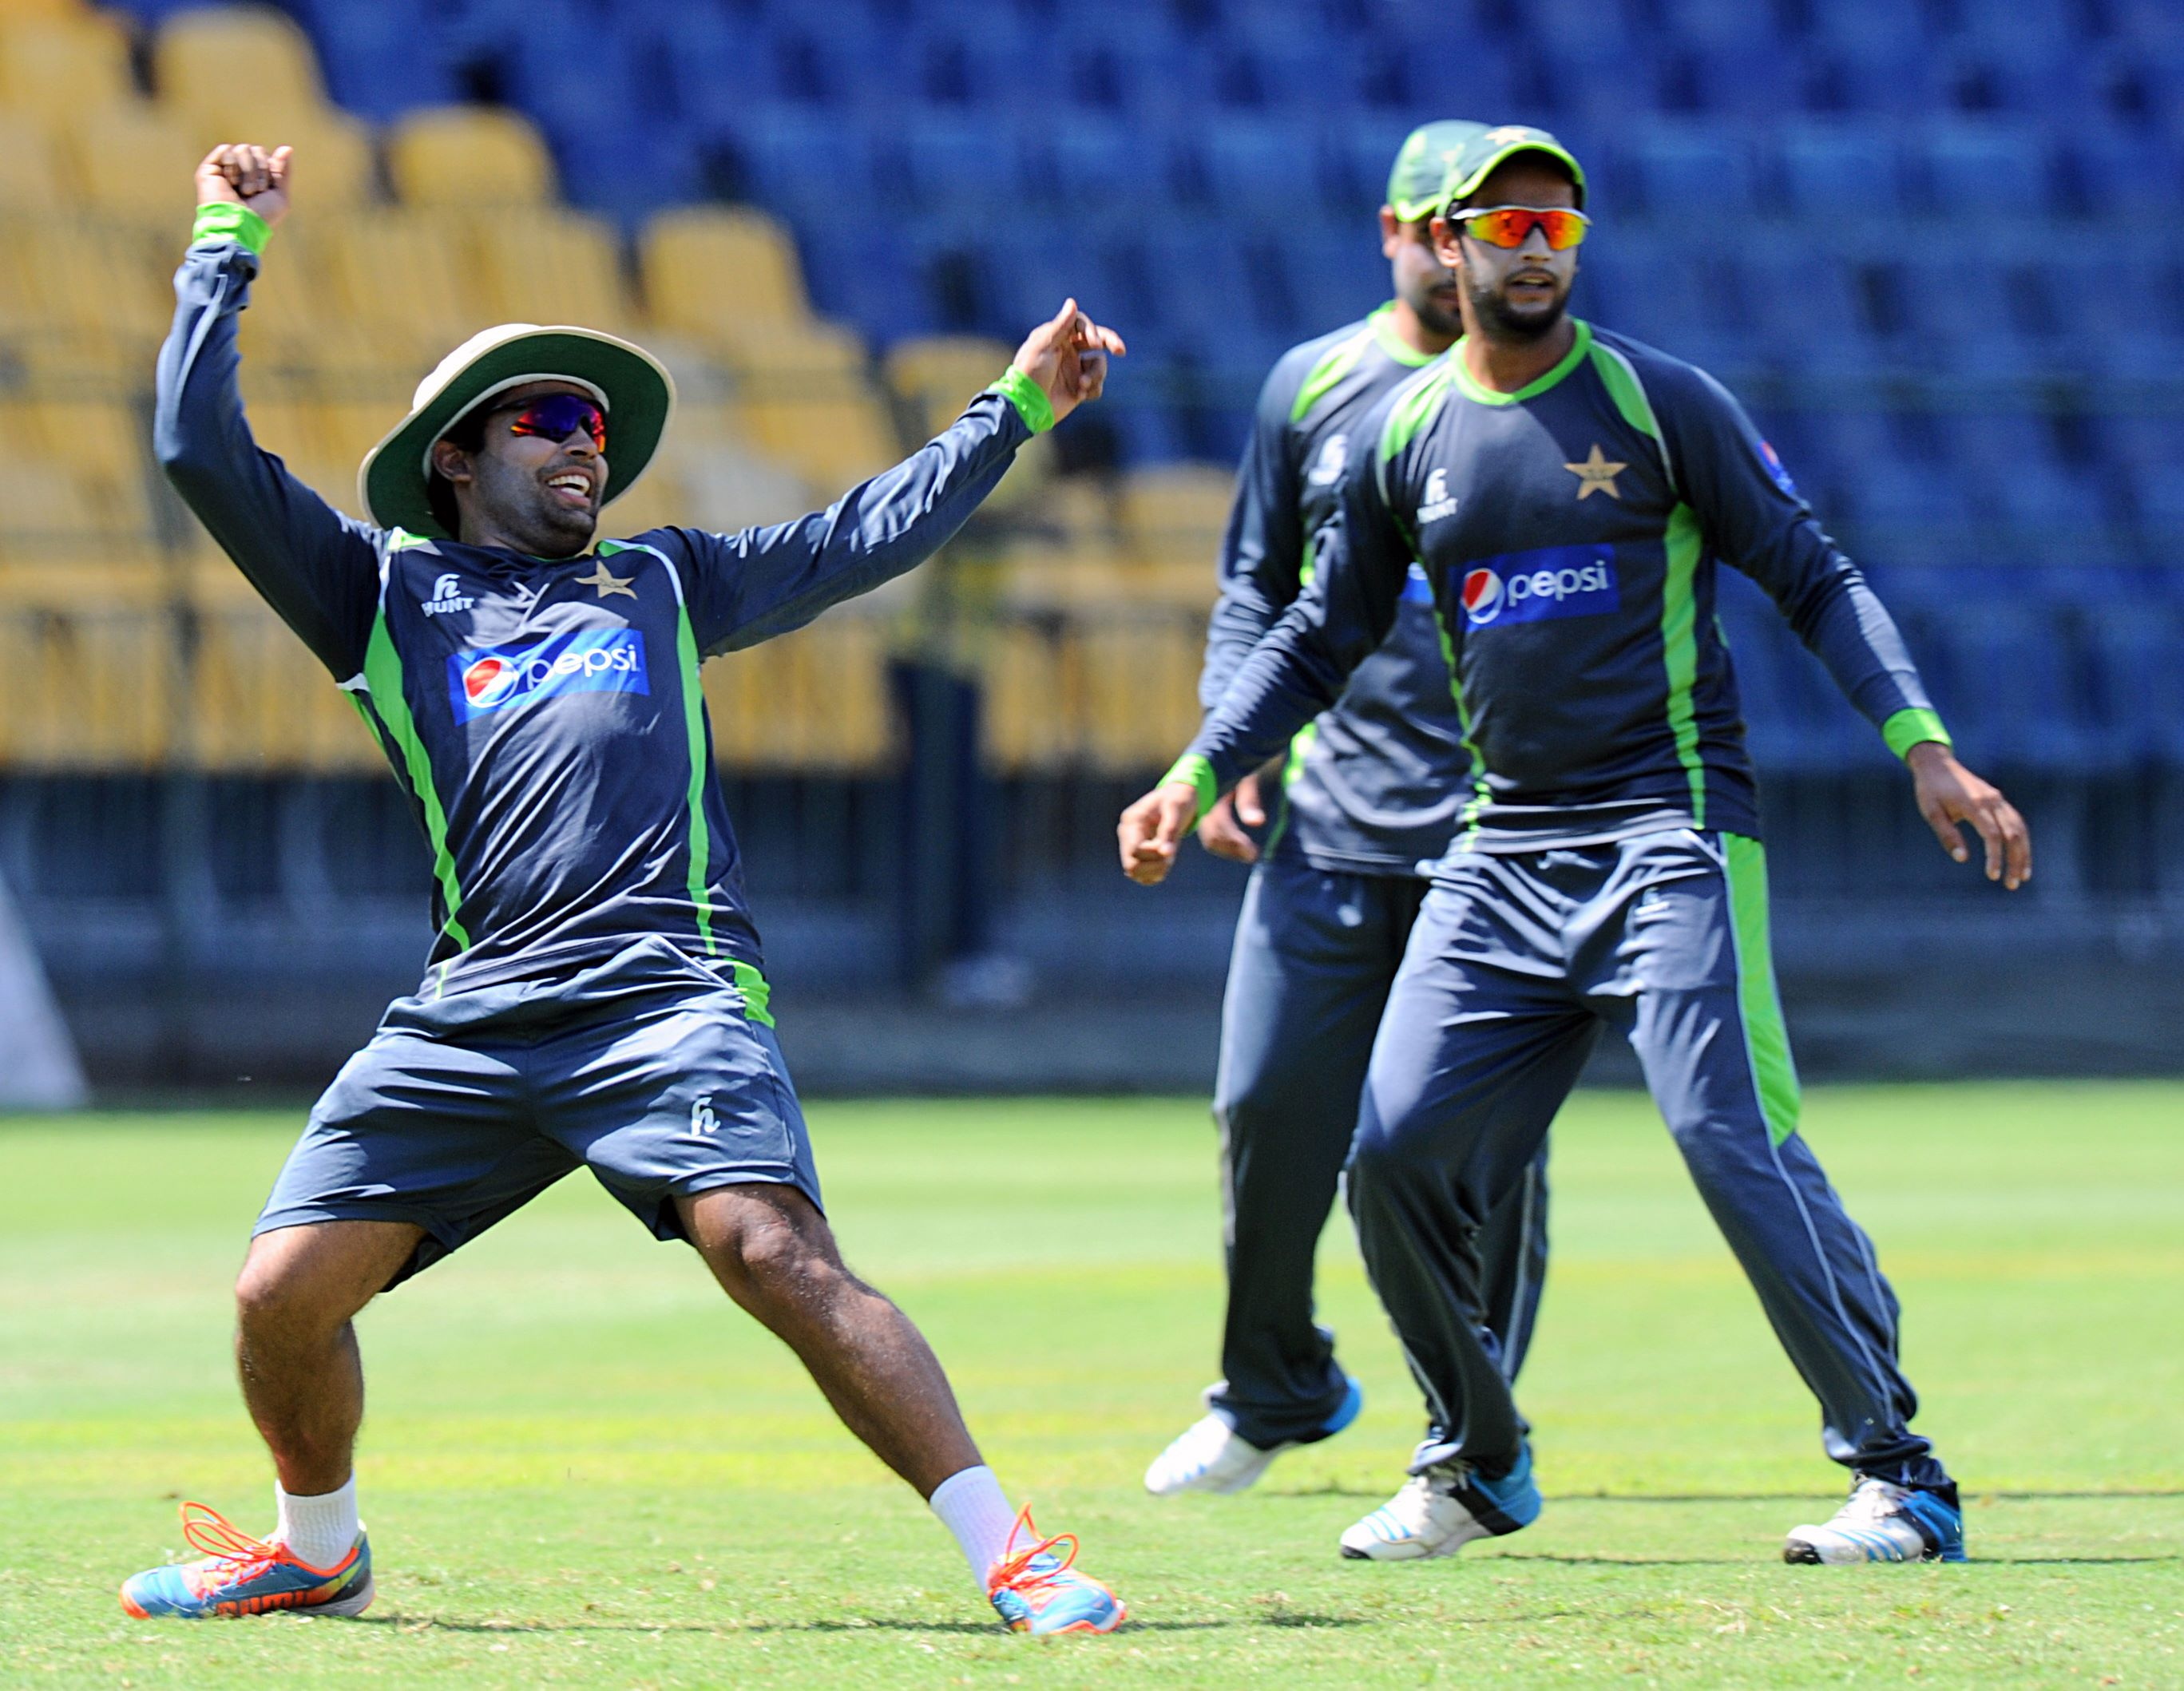 Pakistan's Umar Akmal (left) gestures as his teammate Imad Wasim looks on during a practice session at the R Premadasa International Cricket Stadium in Colombo on Wednesday. Sri Lanka will play their first T20 International match against Pakistan on Thursday. Photo: AFP